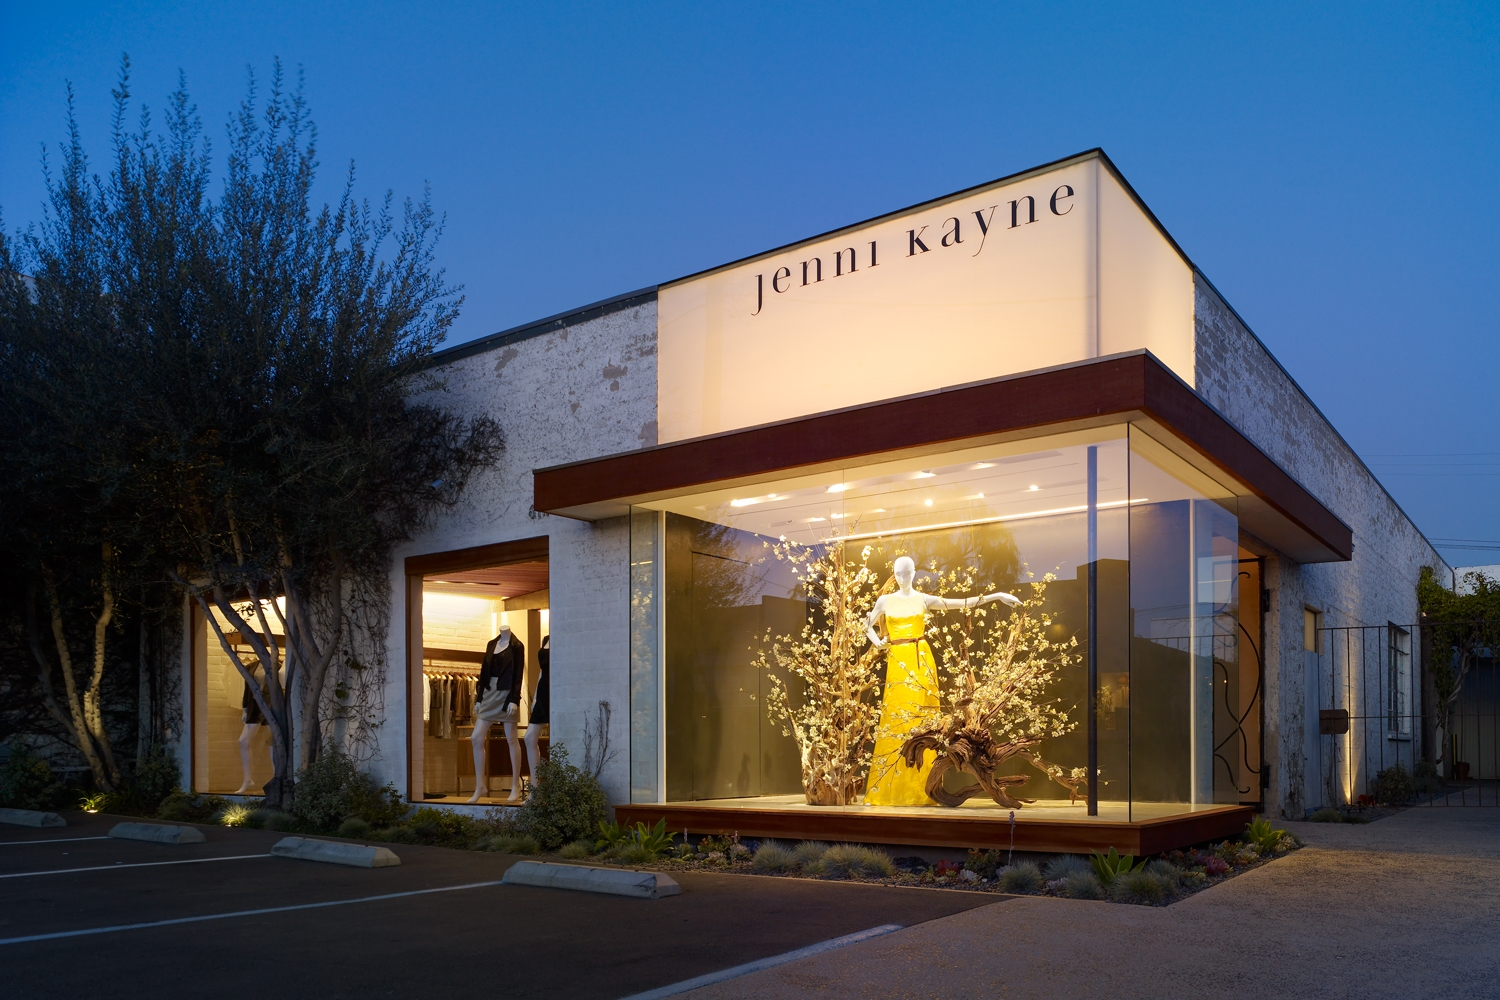 Jenni Kayne Flagship Store   Design // previous work by Alex Babich for Standard Arch